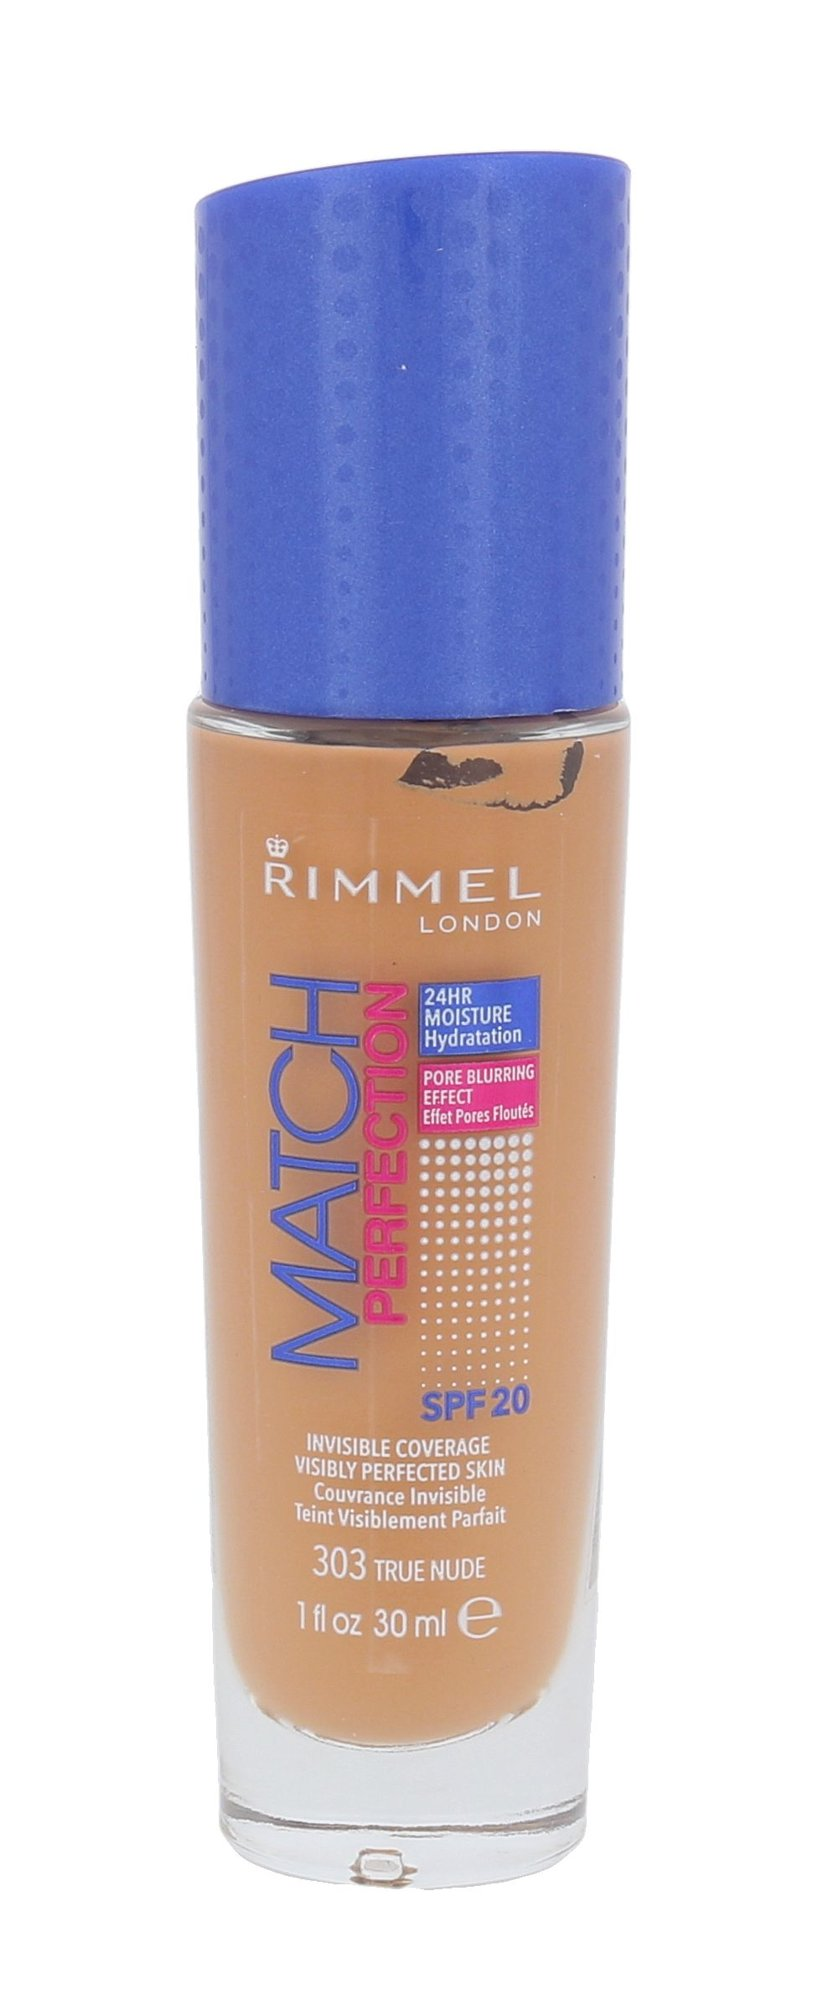 Rimmel London Match Perfection Cosmetic 30ml 303 True Nude